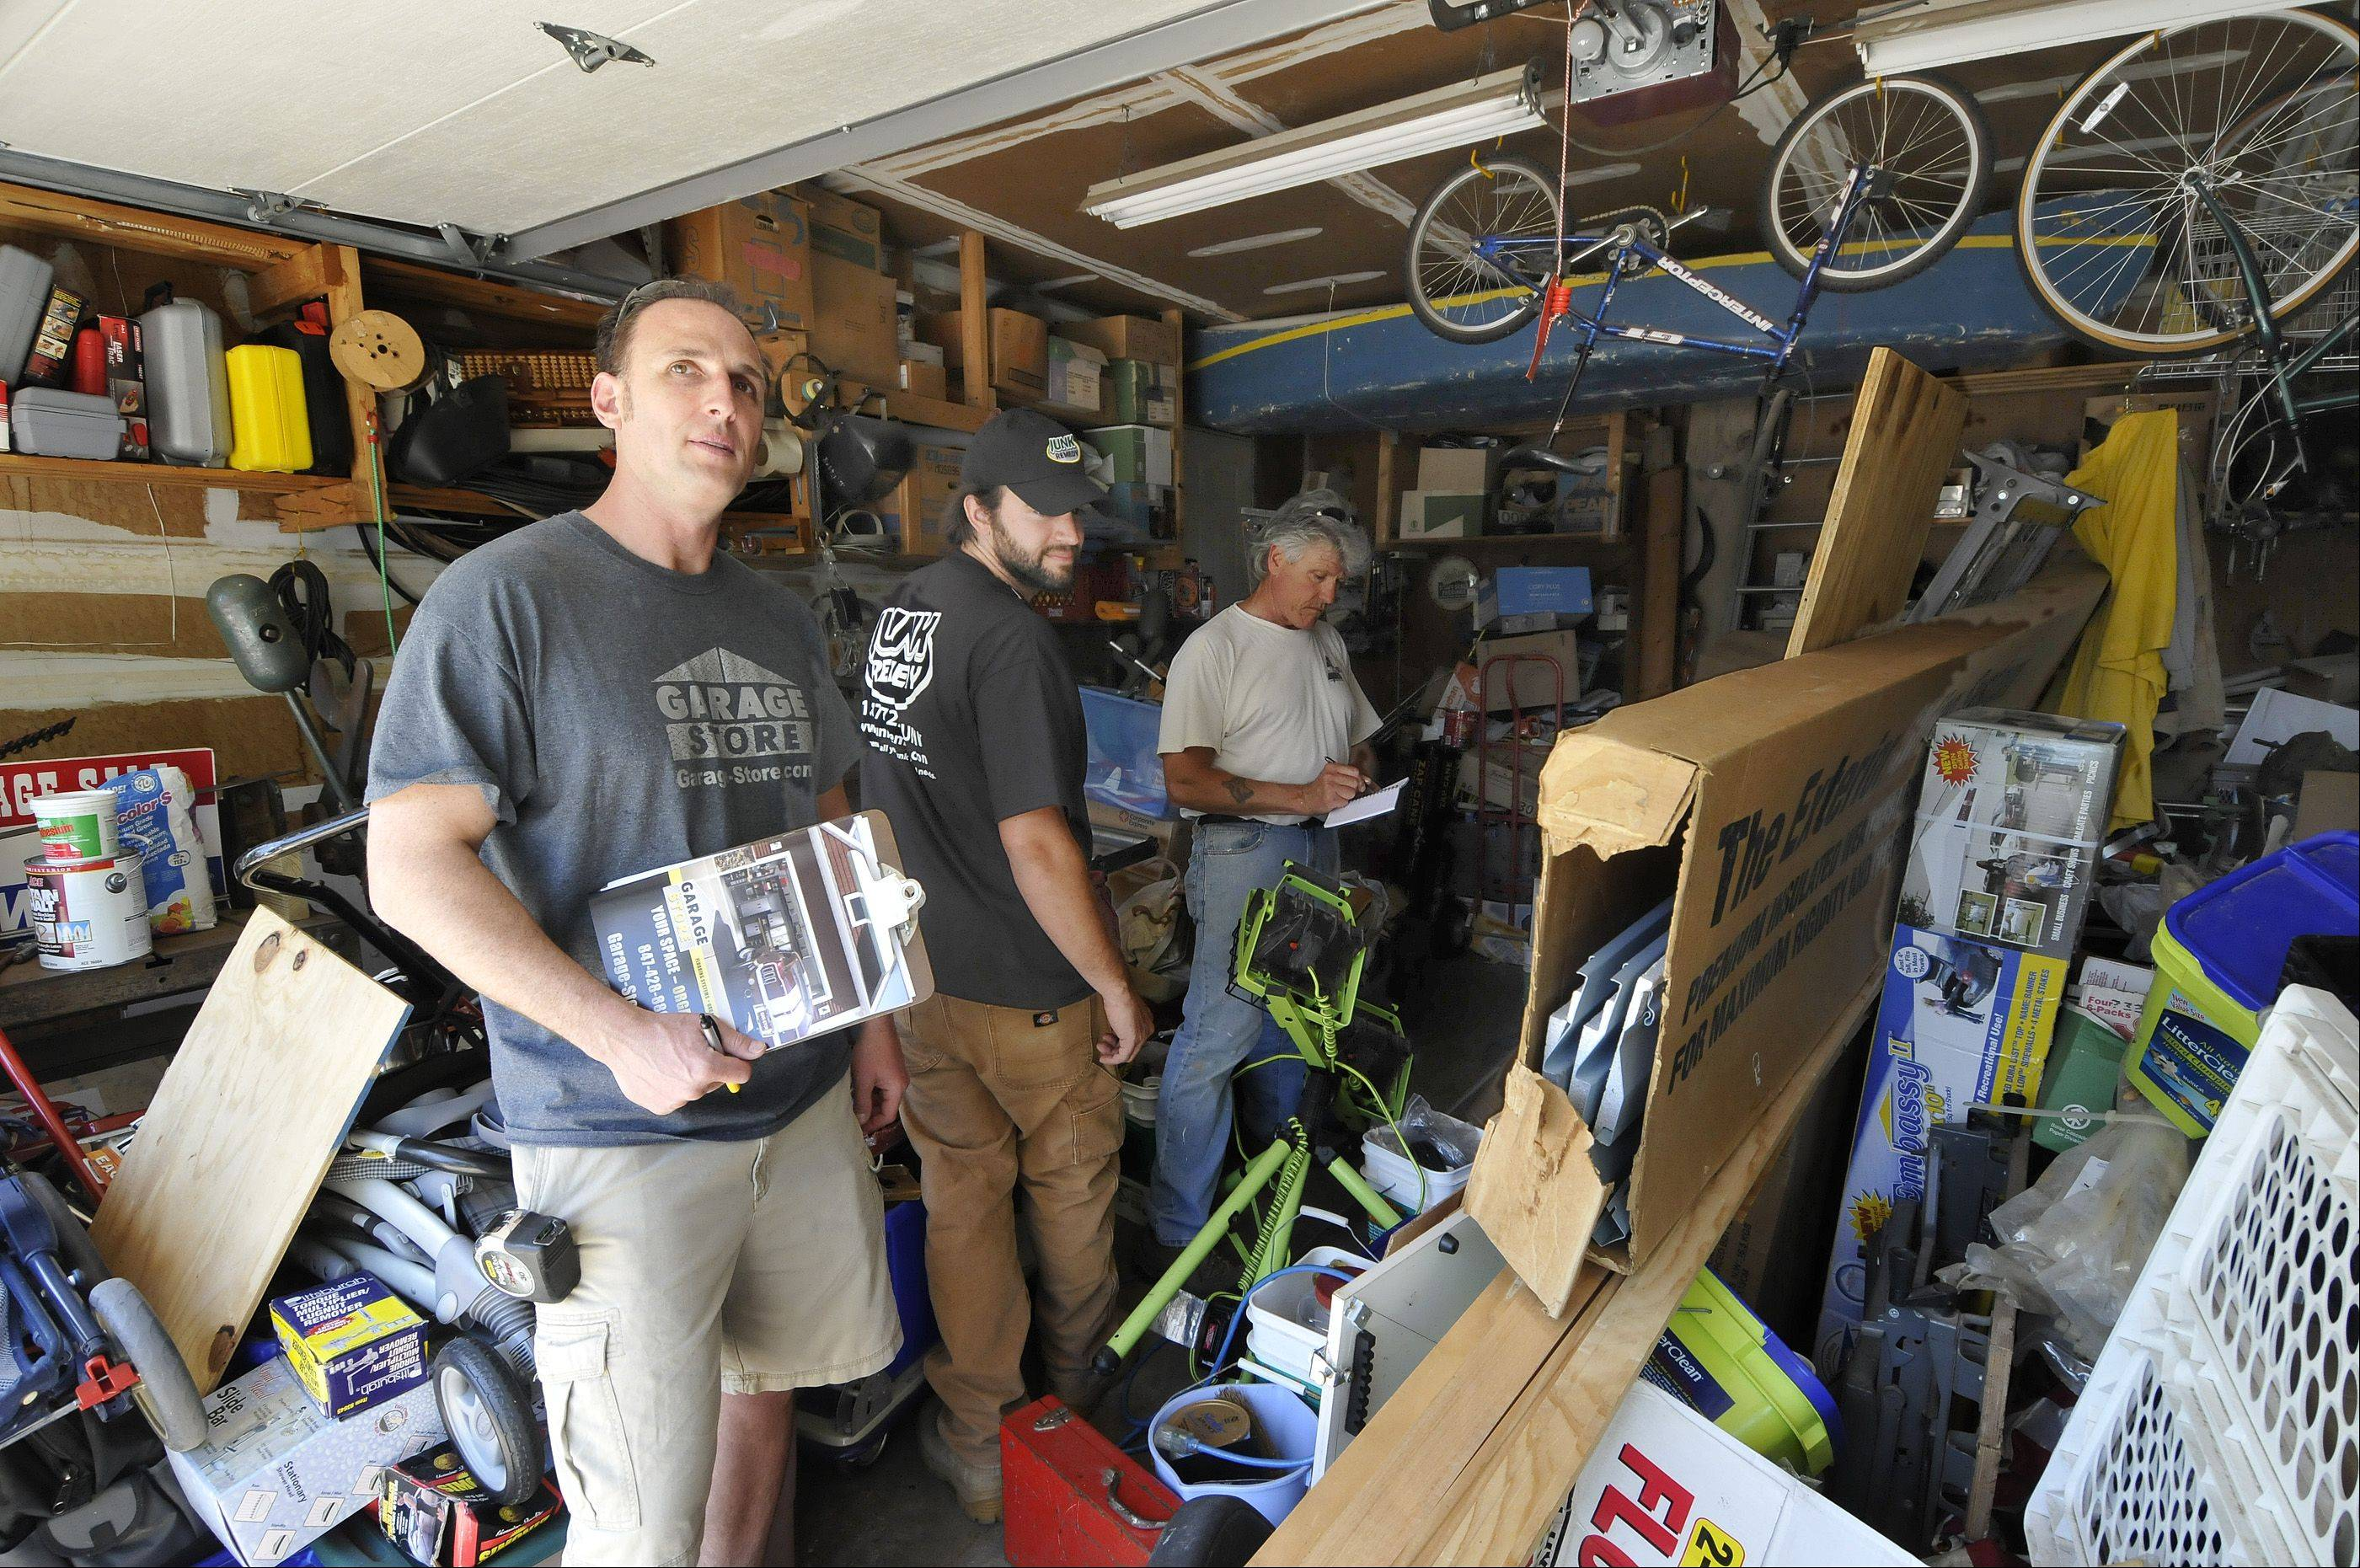 Jim Melchert from Garage Store, left, Nick DeGiulio from Junk Remedy center, and Mel Alger, right, plot their cleanup strategy in the DeBellis' garage.